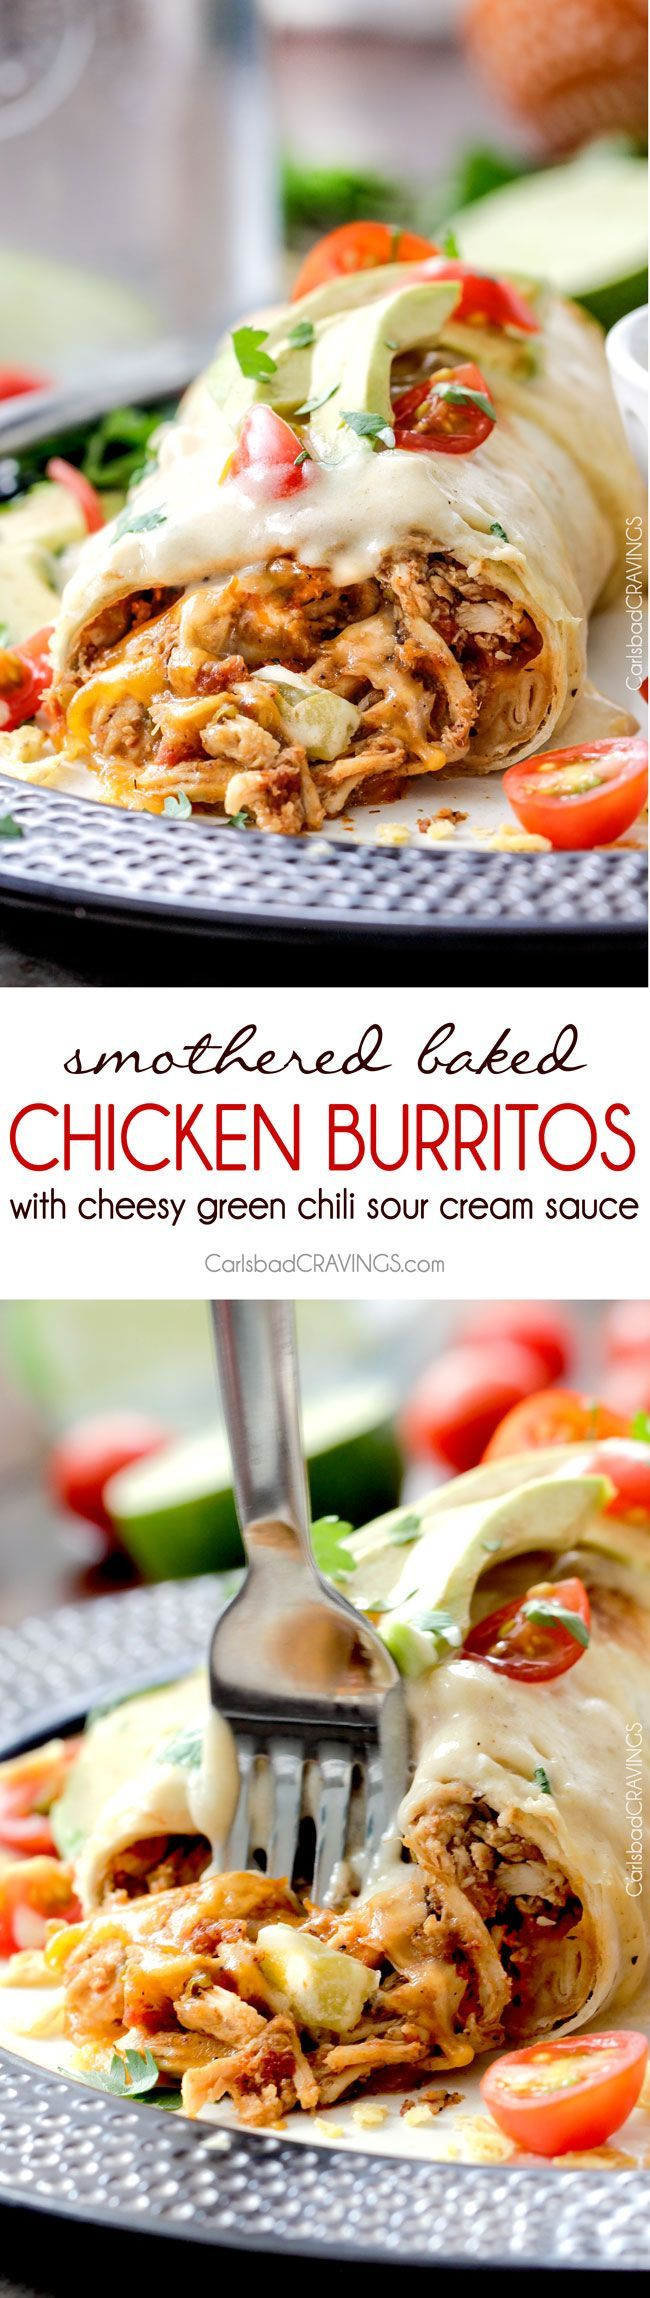 "Smothered Baked Chicken Burritos AKA ""skinny chimichangas"" are restaurant delicious without all the calories! made super easy by stuffing with the BEST slow cooker Mexican chicken and then baked to golden perfection and smothered in most incredible cheesy green chili sour cream sauce.:"